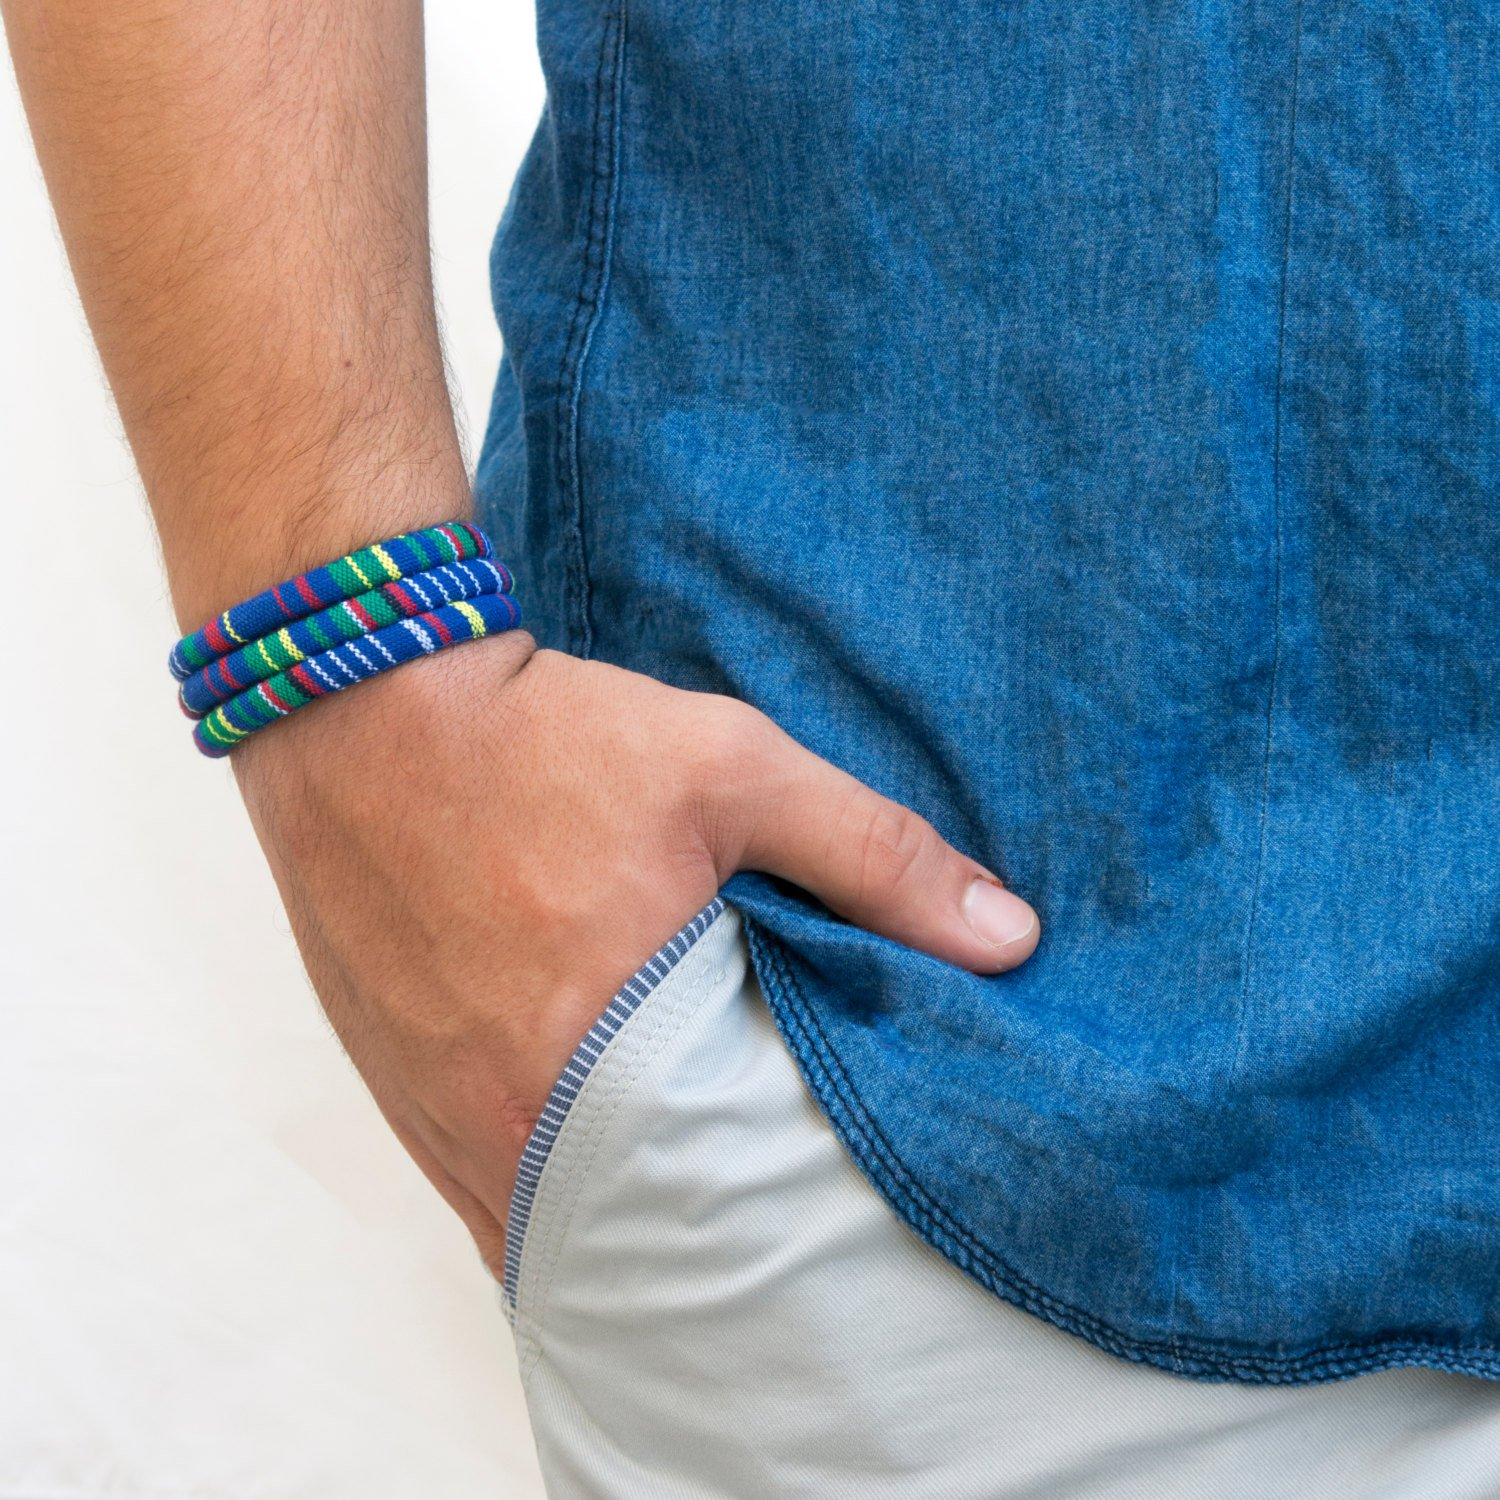 Men's Bracelet - Men's Jewelry - Men's Vegan Bracelet - Men's Gift - Bracelets For Men